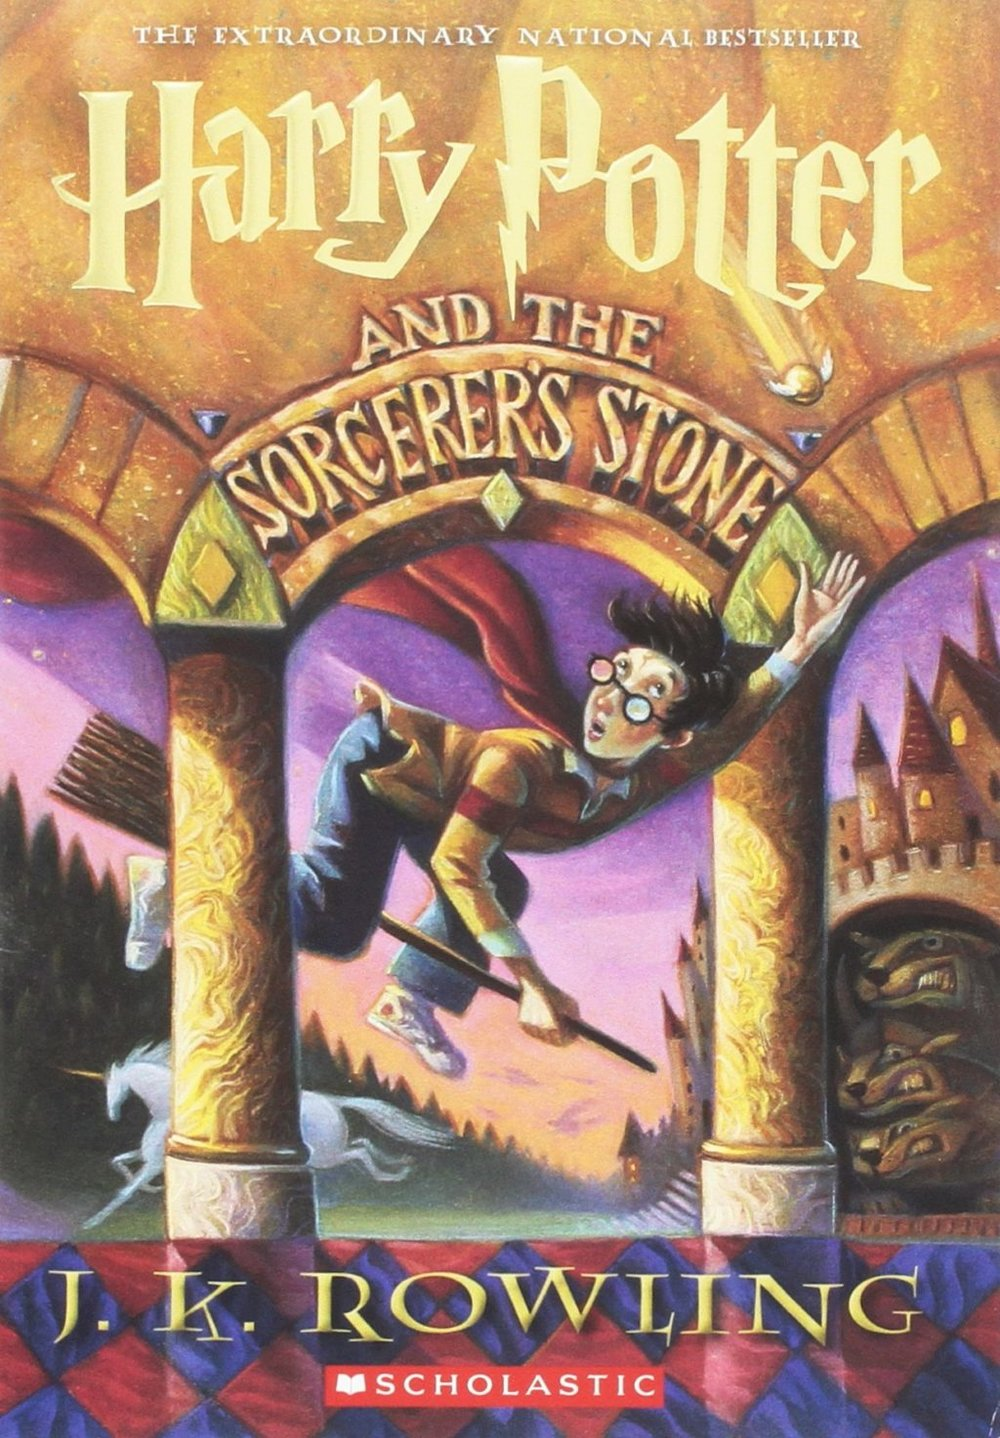 Harry-Potter-and-the-Sorcerers-Stone-Book-Cover-1024x1473.jpg